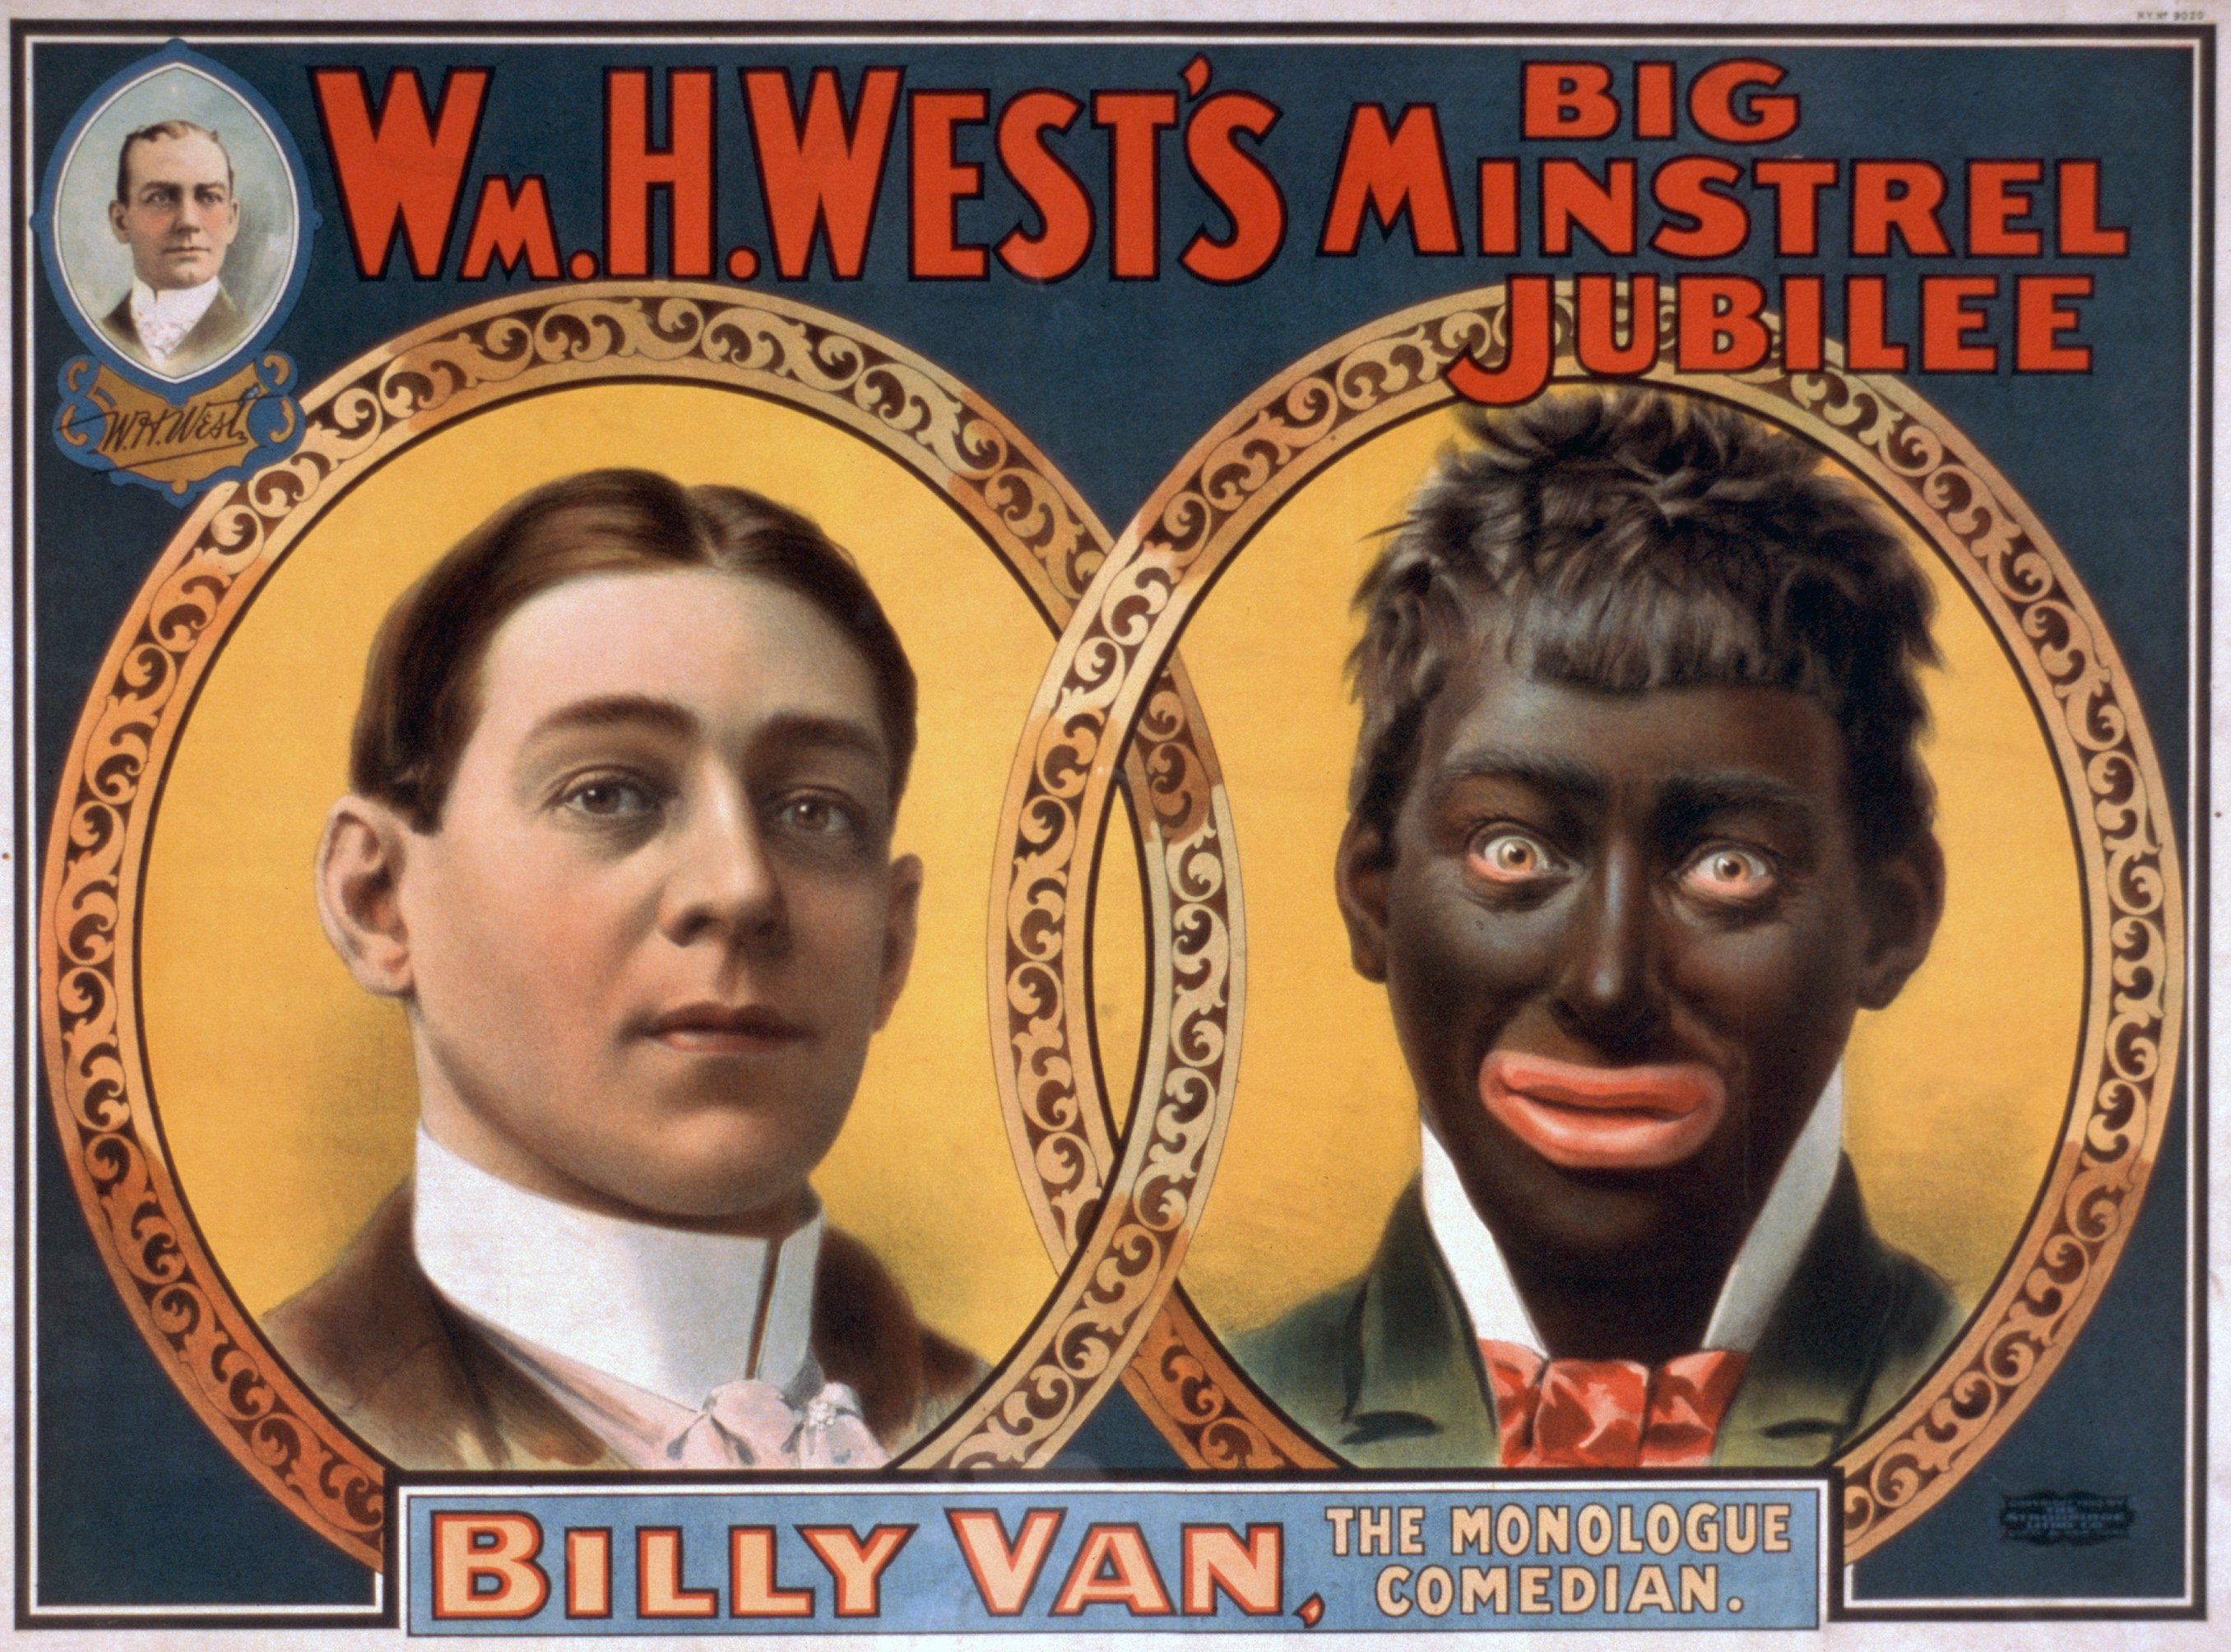 Blackface entertainment gained popularity in early 19th century.